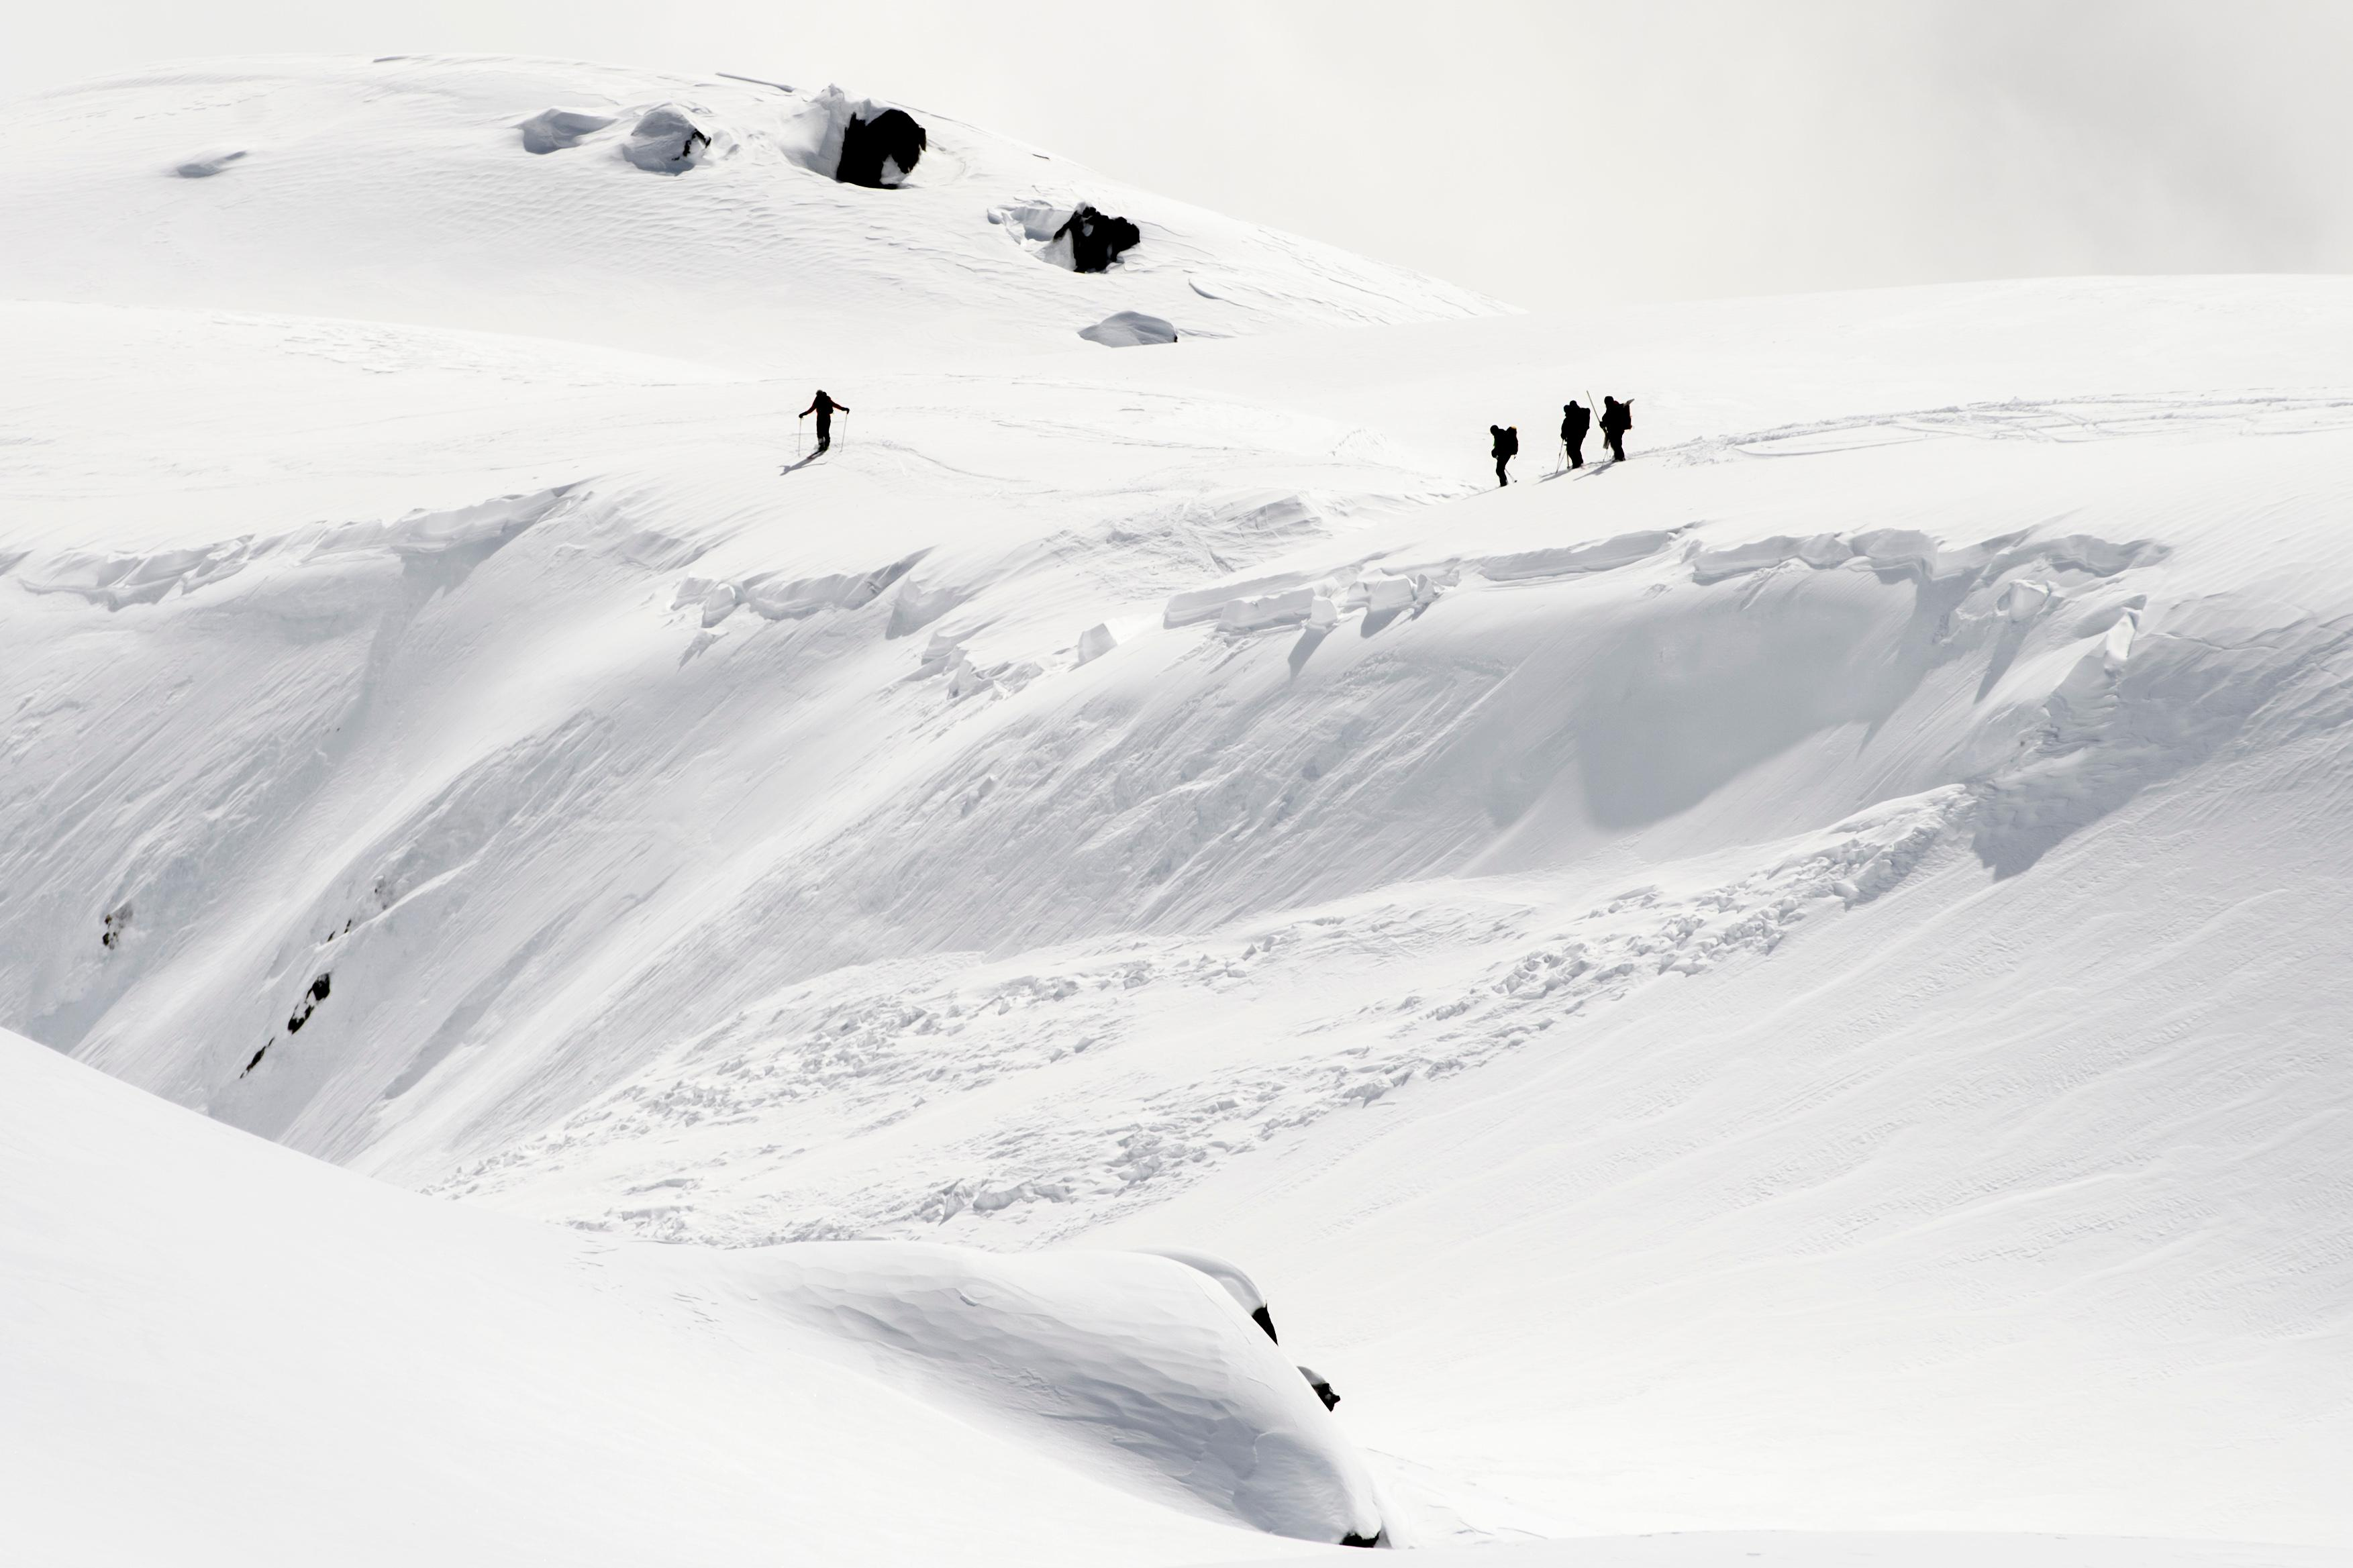 Rescue crews walk at an avalanche site near Fiesch, Switzerland, Sunday, April 1, 2018. Swiss police say three people have been killed in an avalanche in the Alps. Another two were taken to a hospital with light injuries. Police  say the avalanche hit the group of five skiers on Saturday afternoon. The group had set off from an Alpine hut earlier in the day to cross the Aletsch glacier in southern Switzerland. (Jean-Christophe Bott/Keystone via AP)